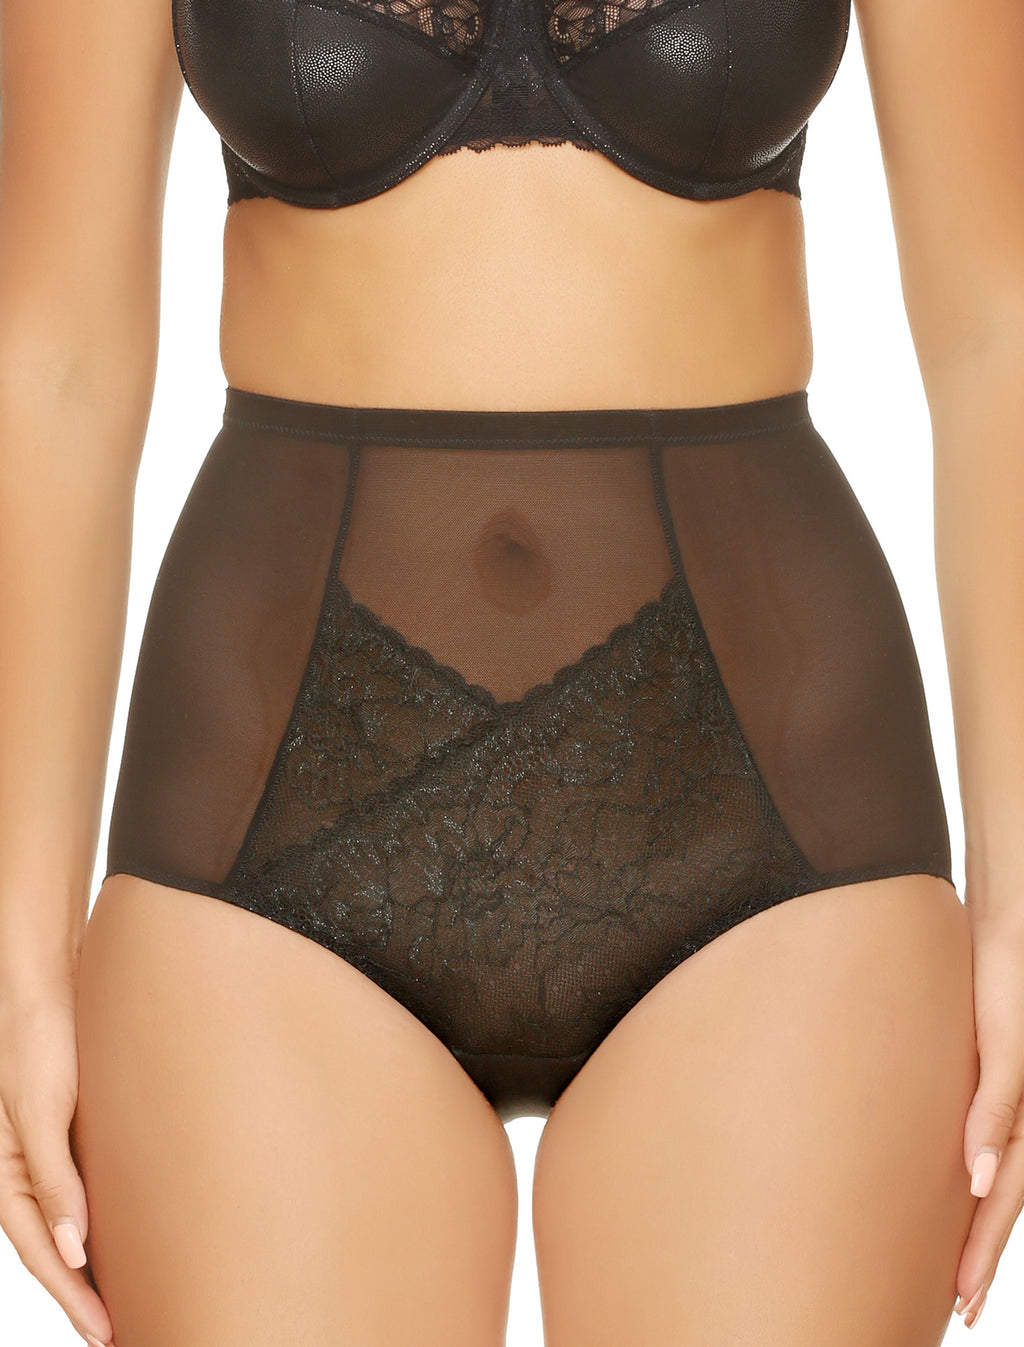 Lauma, Black Sheer High Waist Panties, On Model Front, 14H52